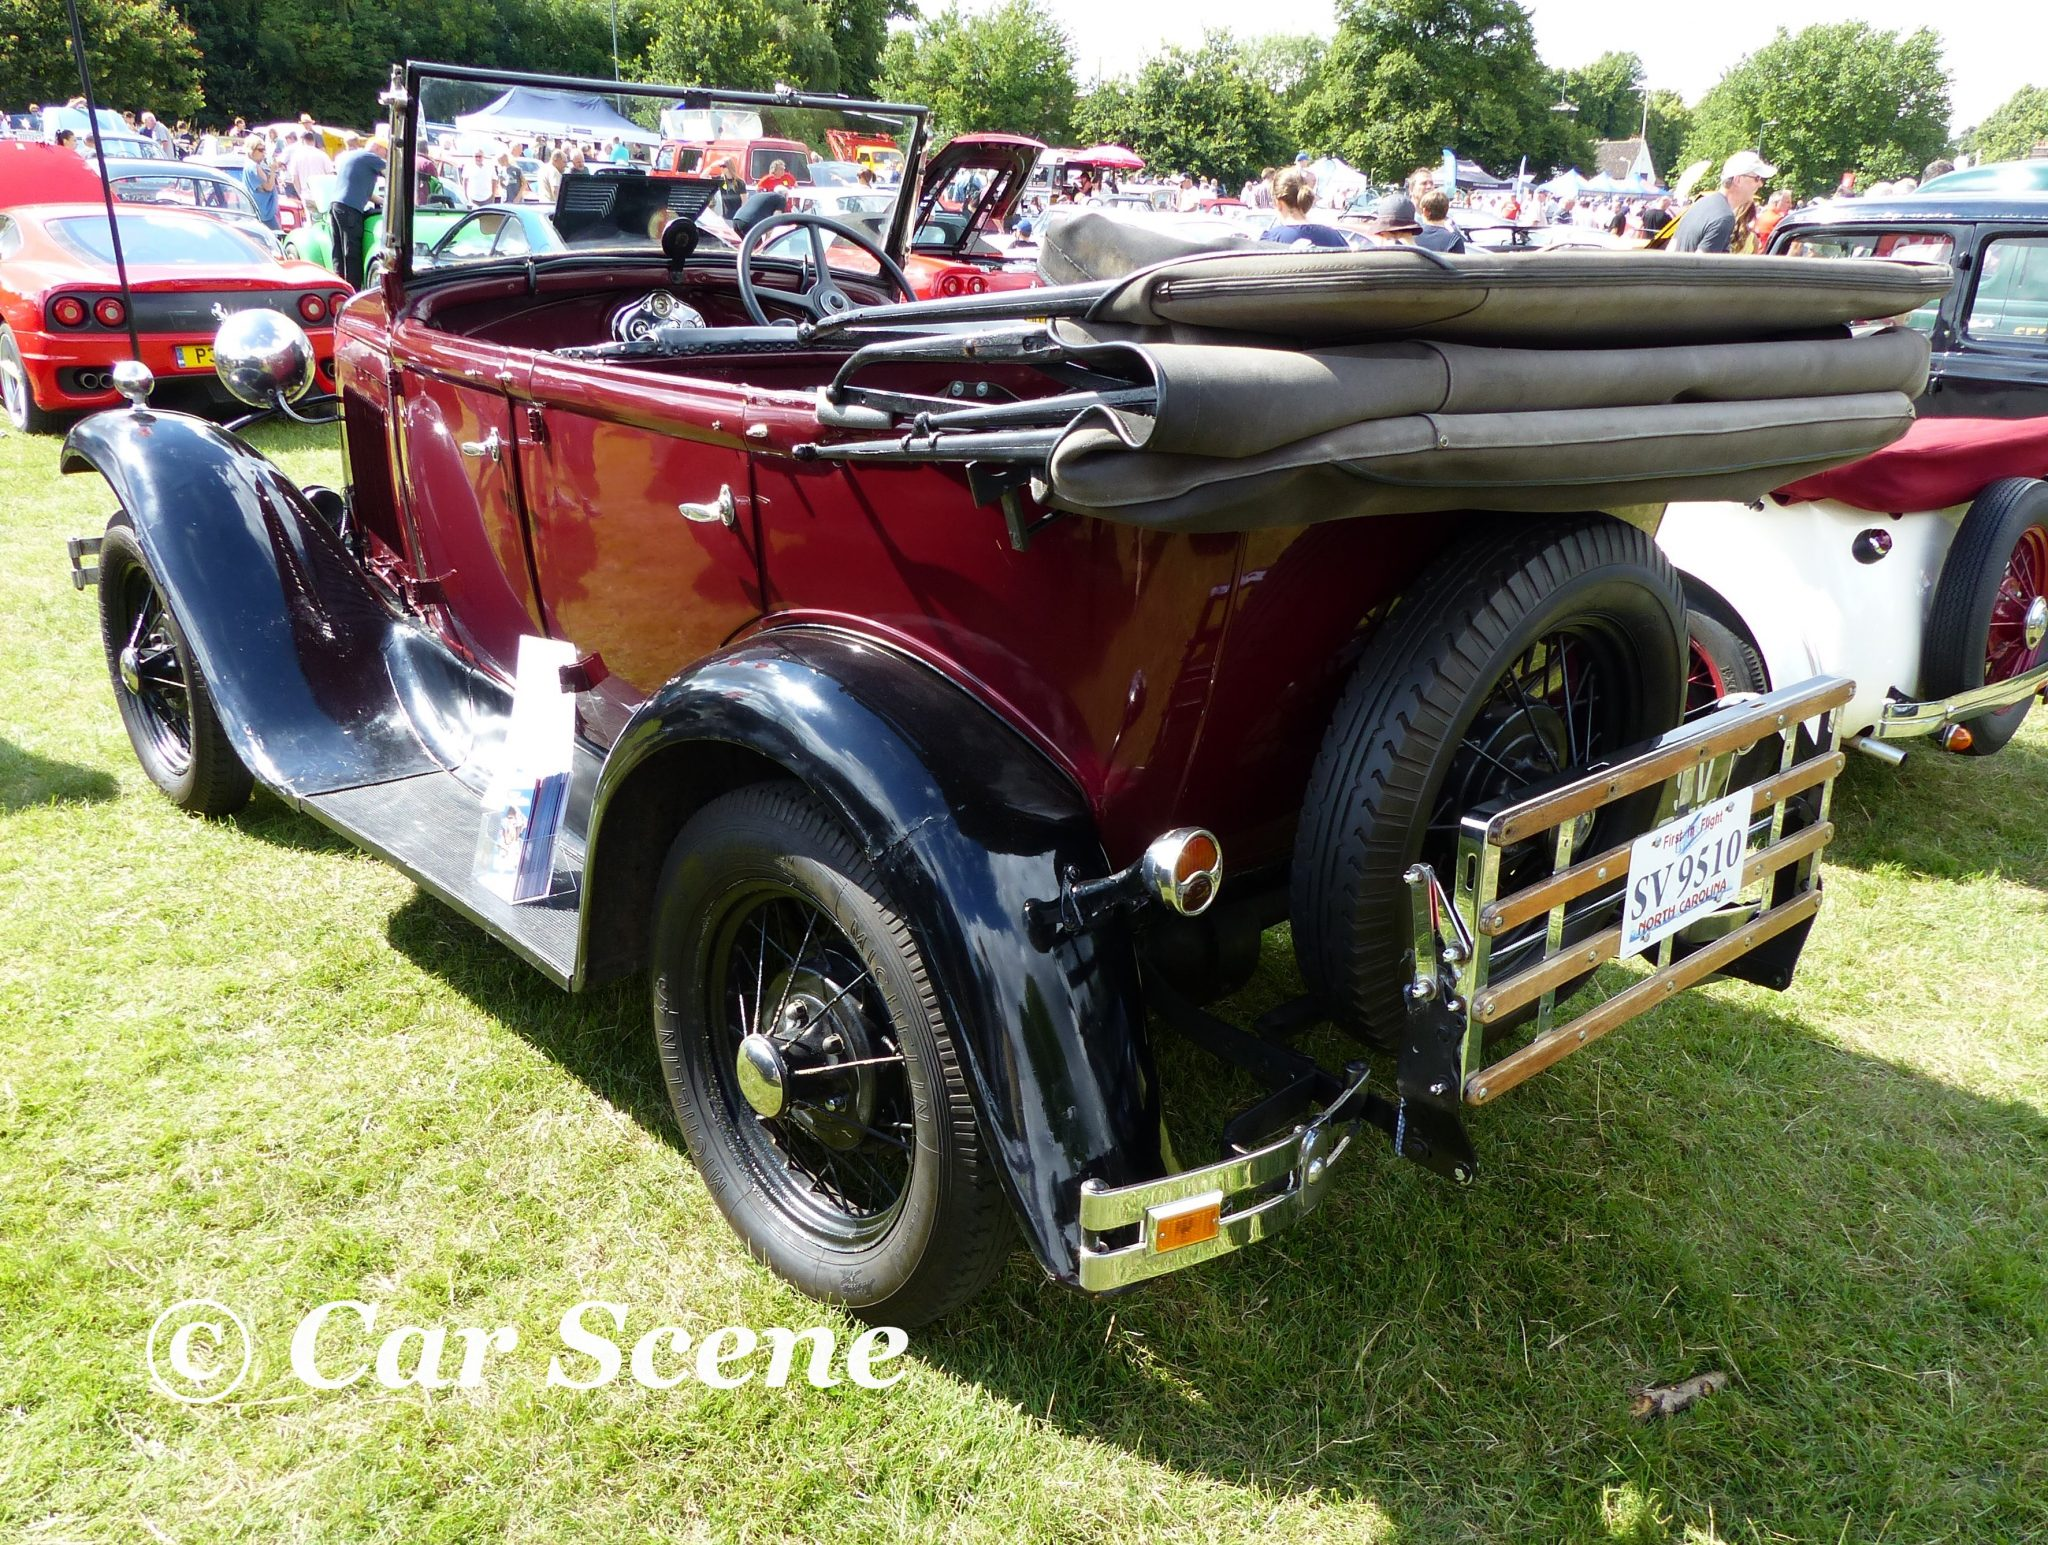 1930 Ford Model A tourer rear view